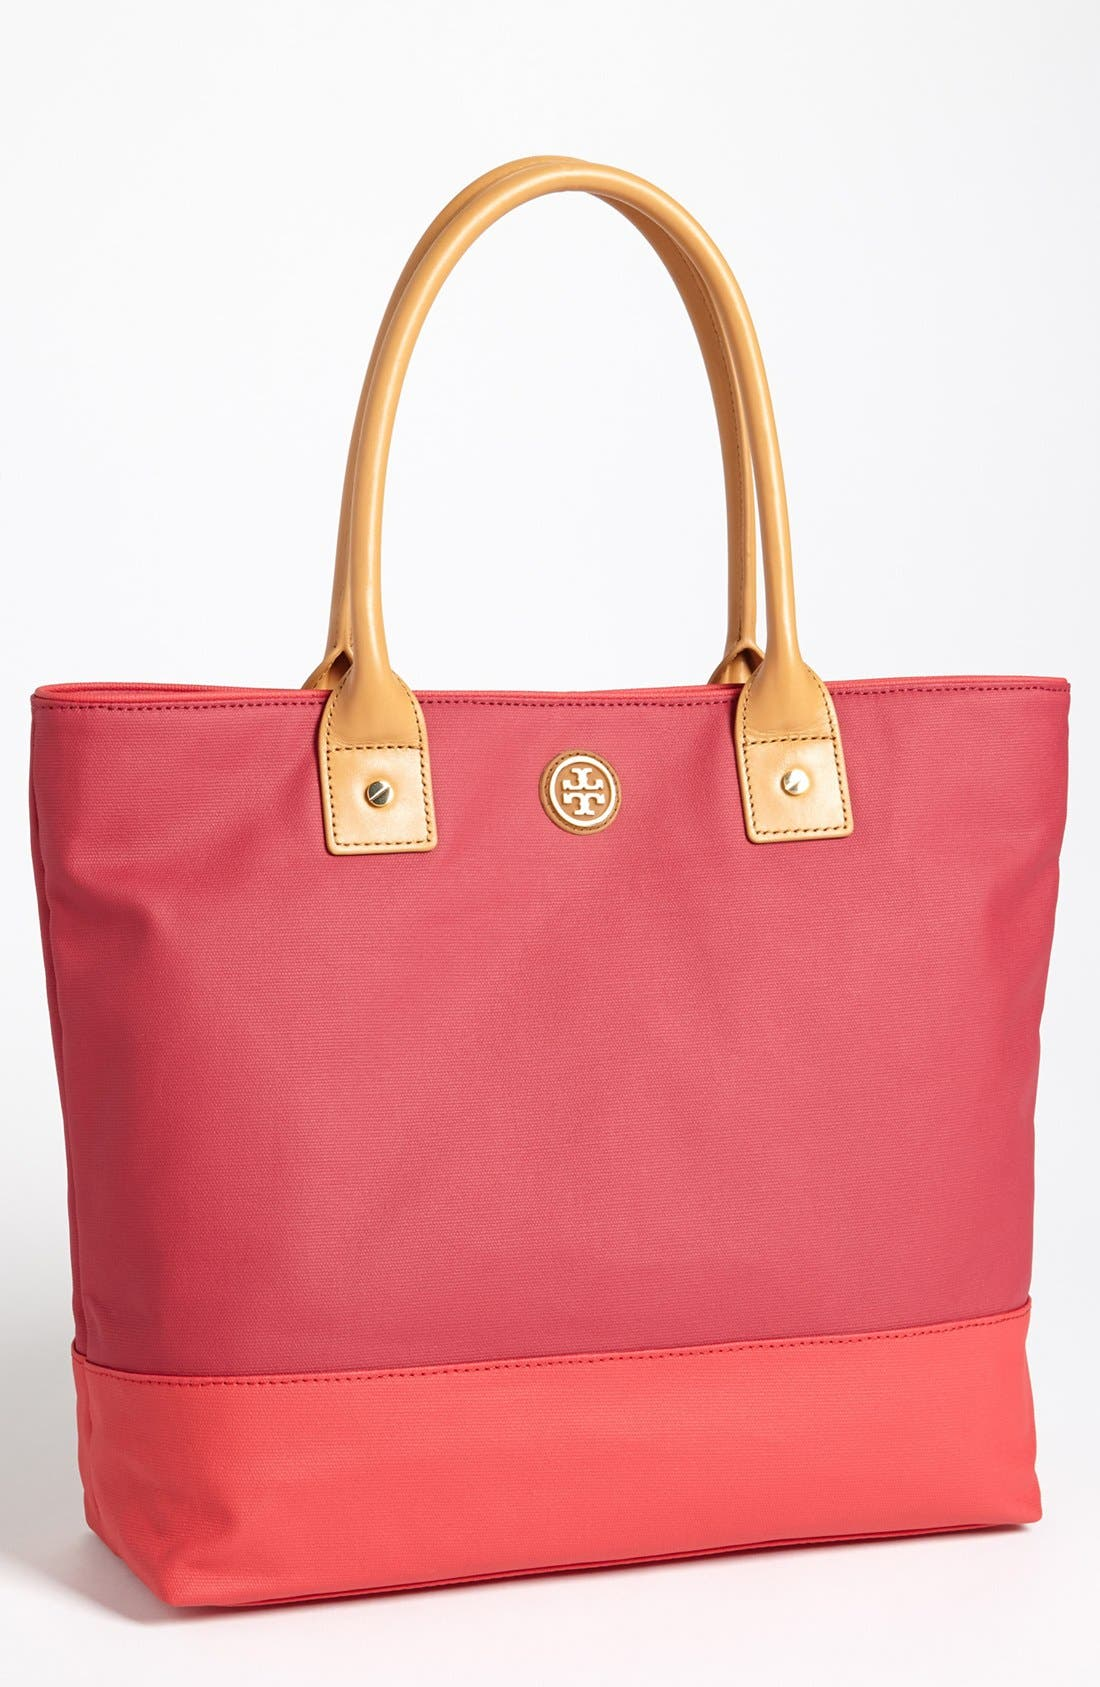 Alternate Image 1 Selected - Tory Burch 'Jaden' Tote